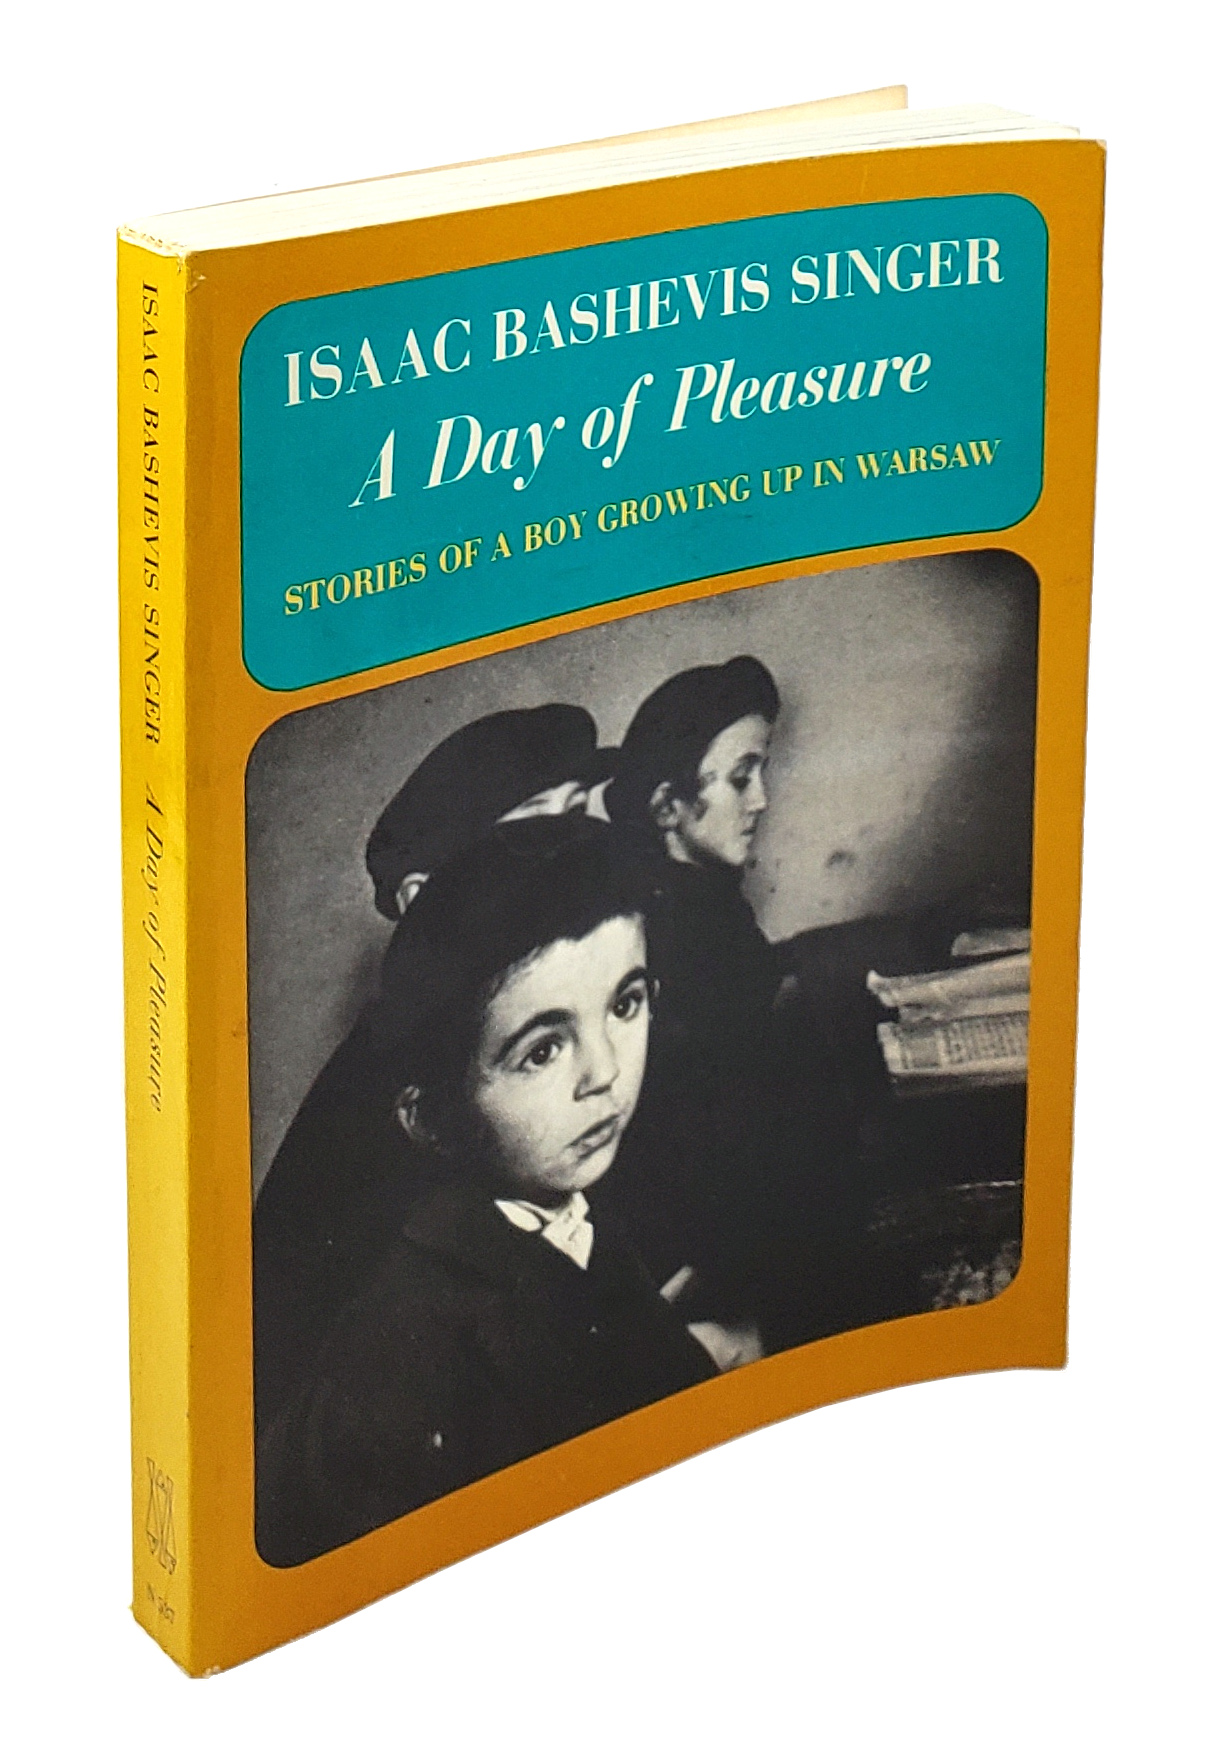 A Day of Pleasure Stories of a Boy Growing Up in Warsaw